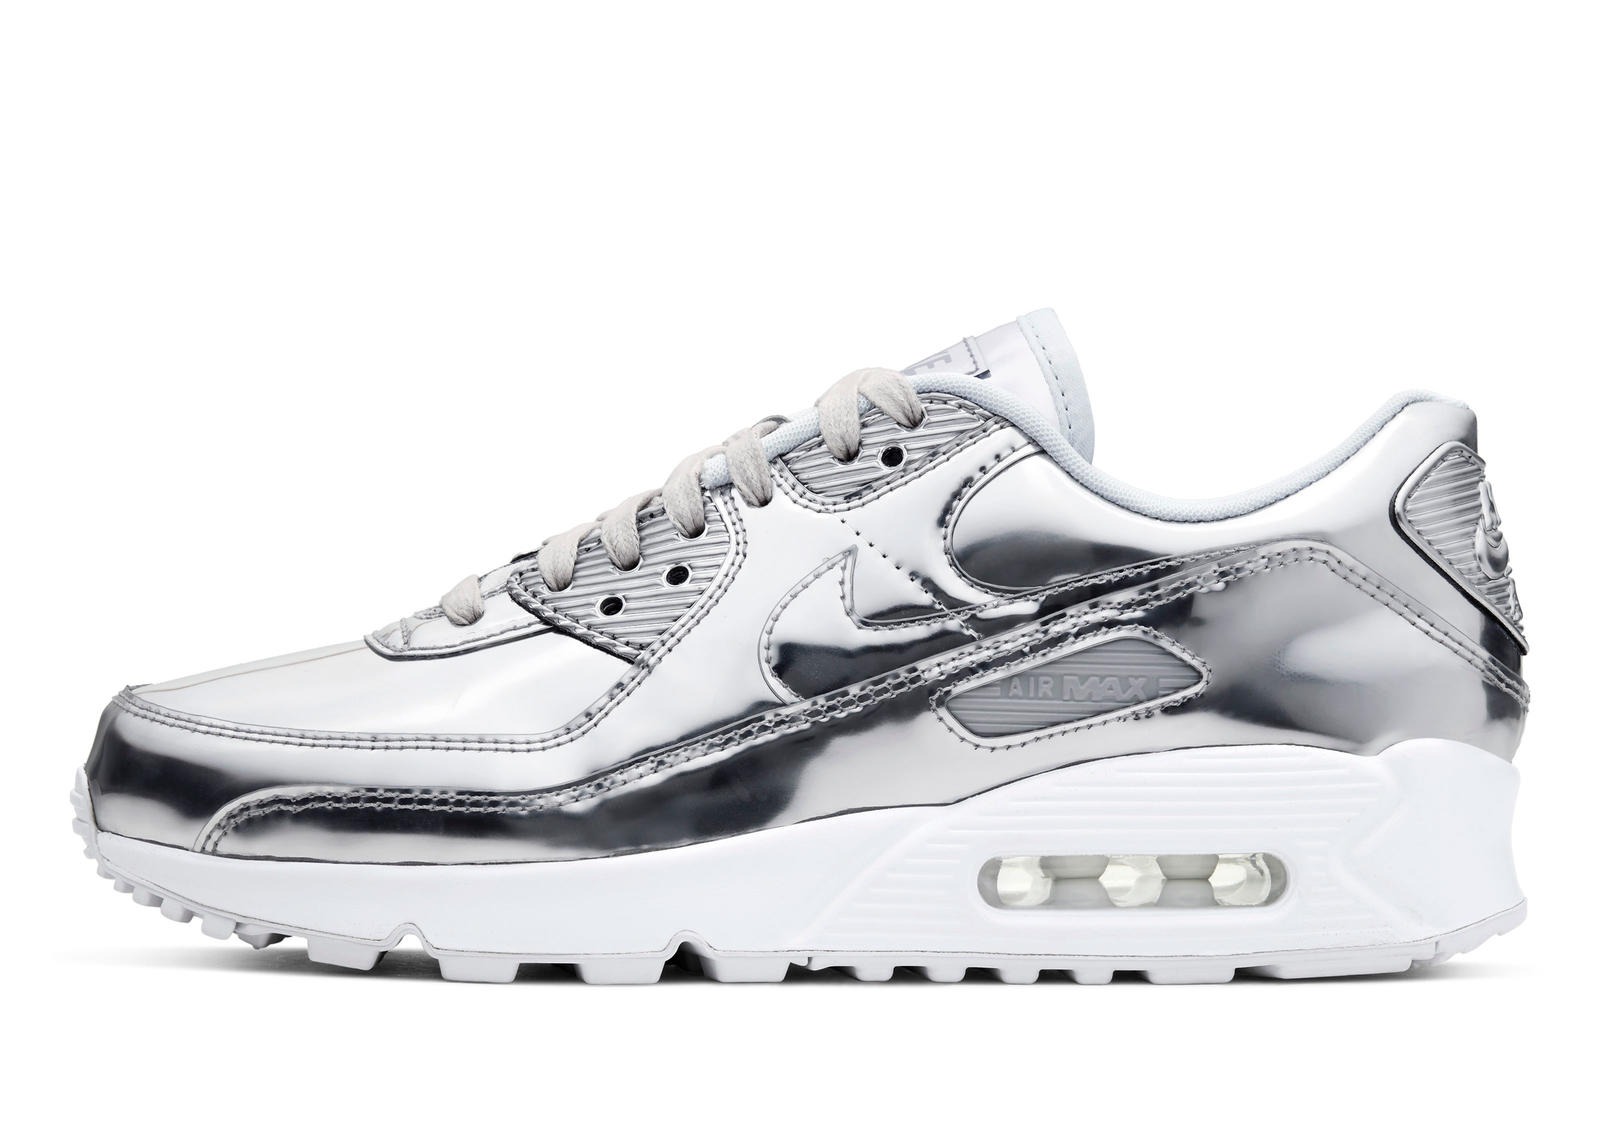 Air Max 90 'Metallic' Pack Silver